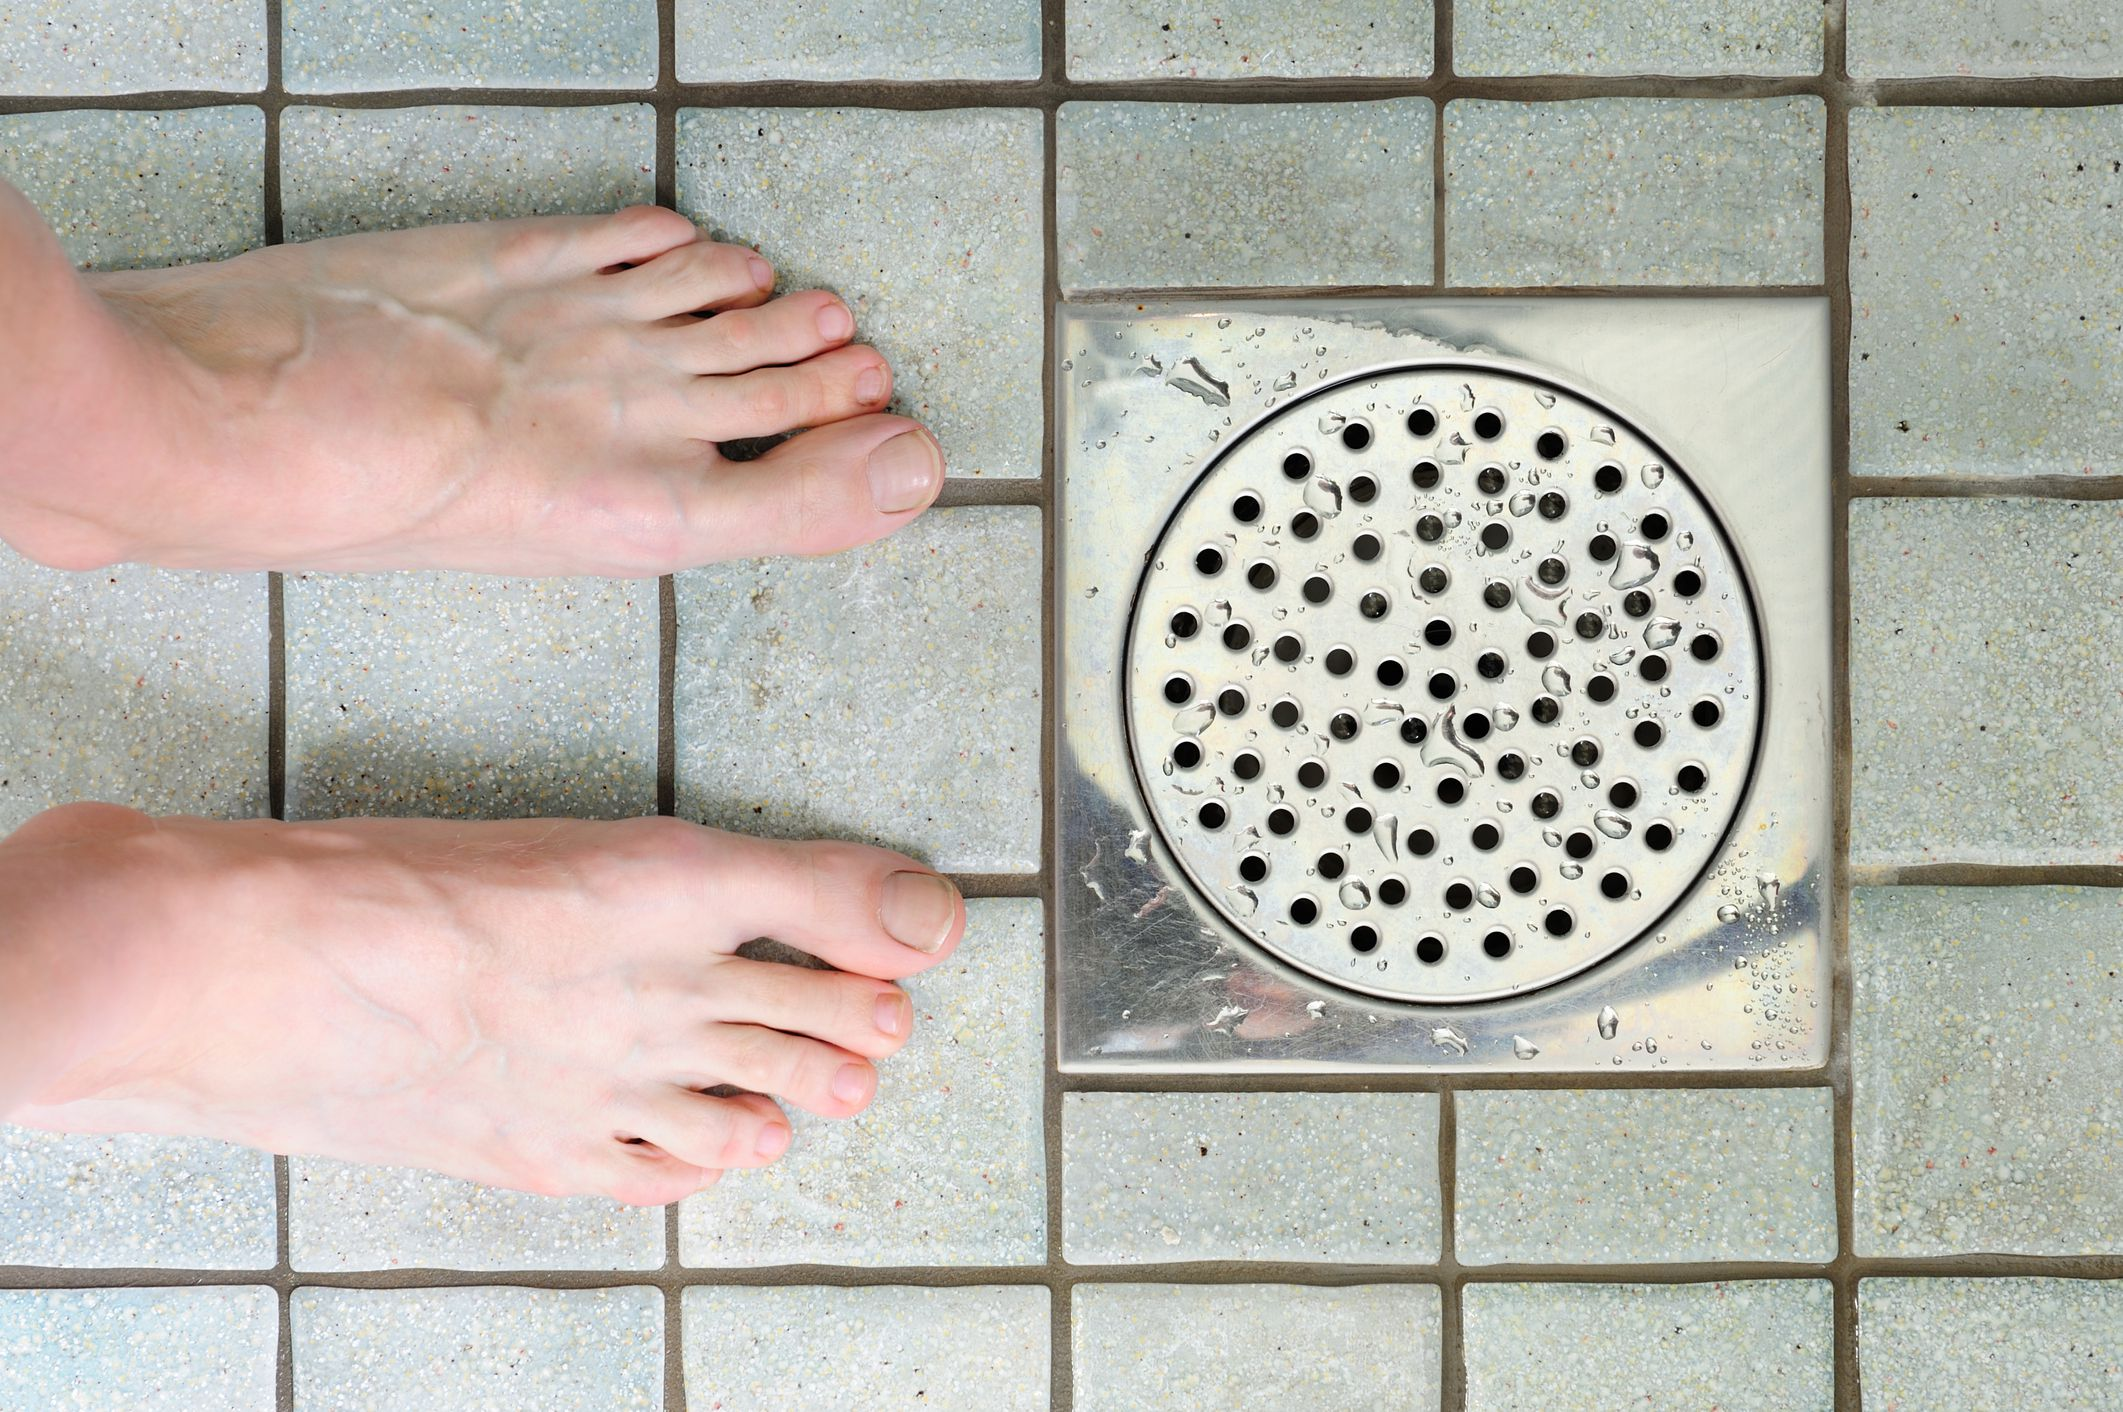 How To Use Baking Soda to Unclog Drains